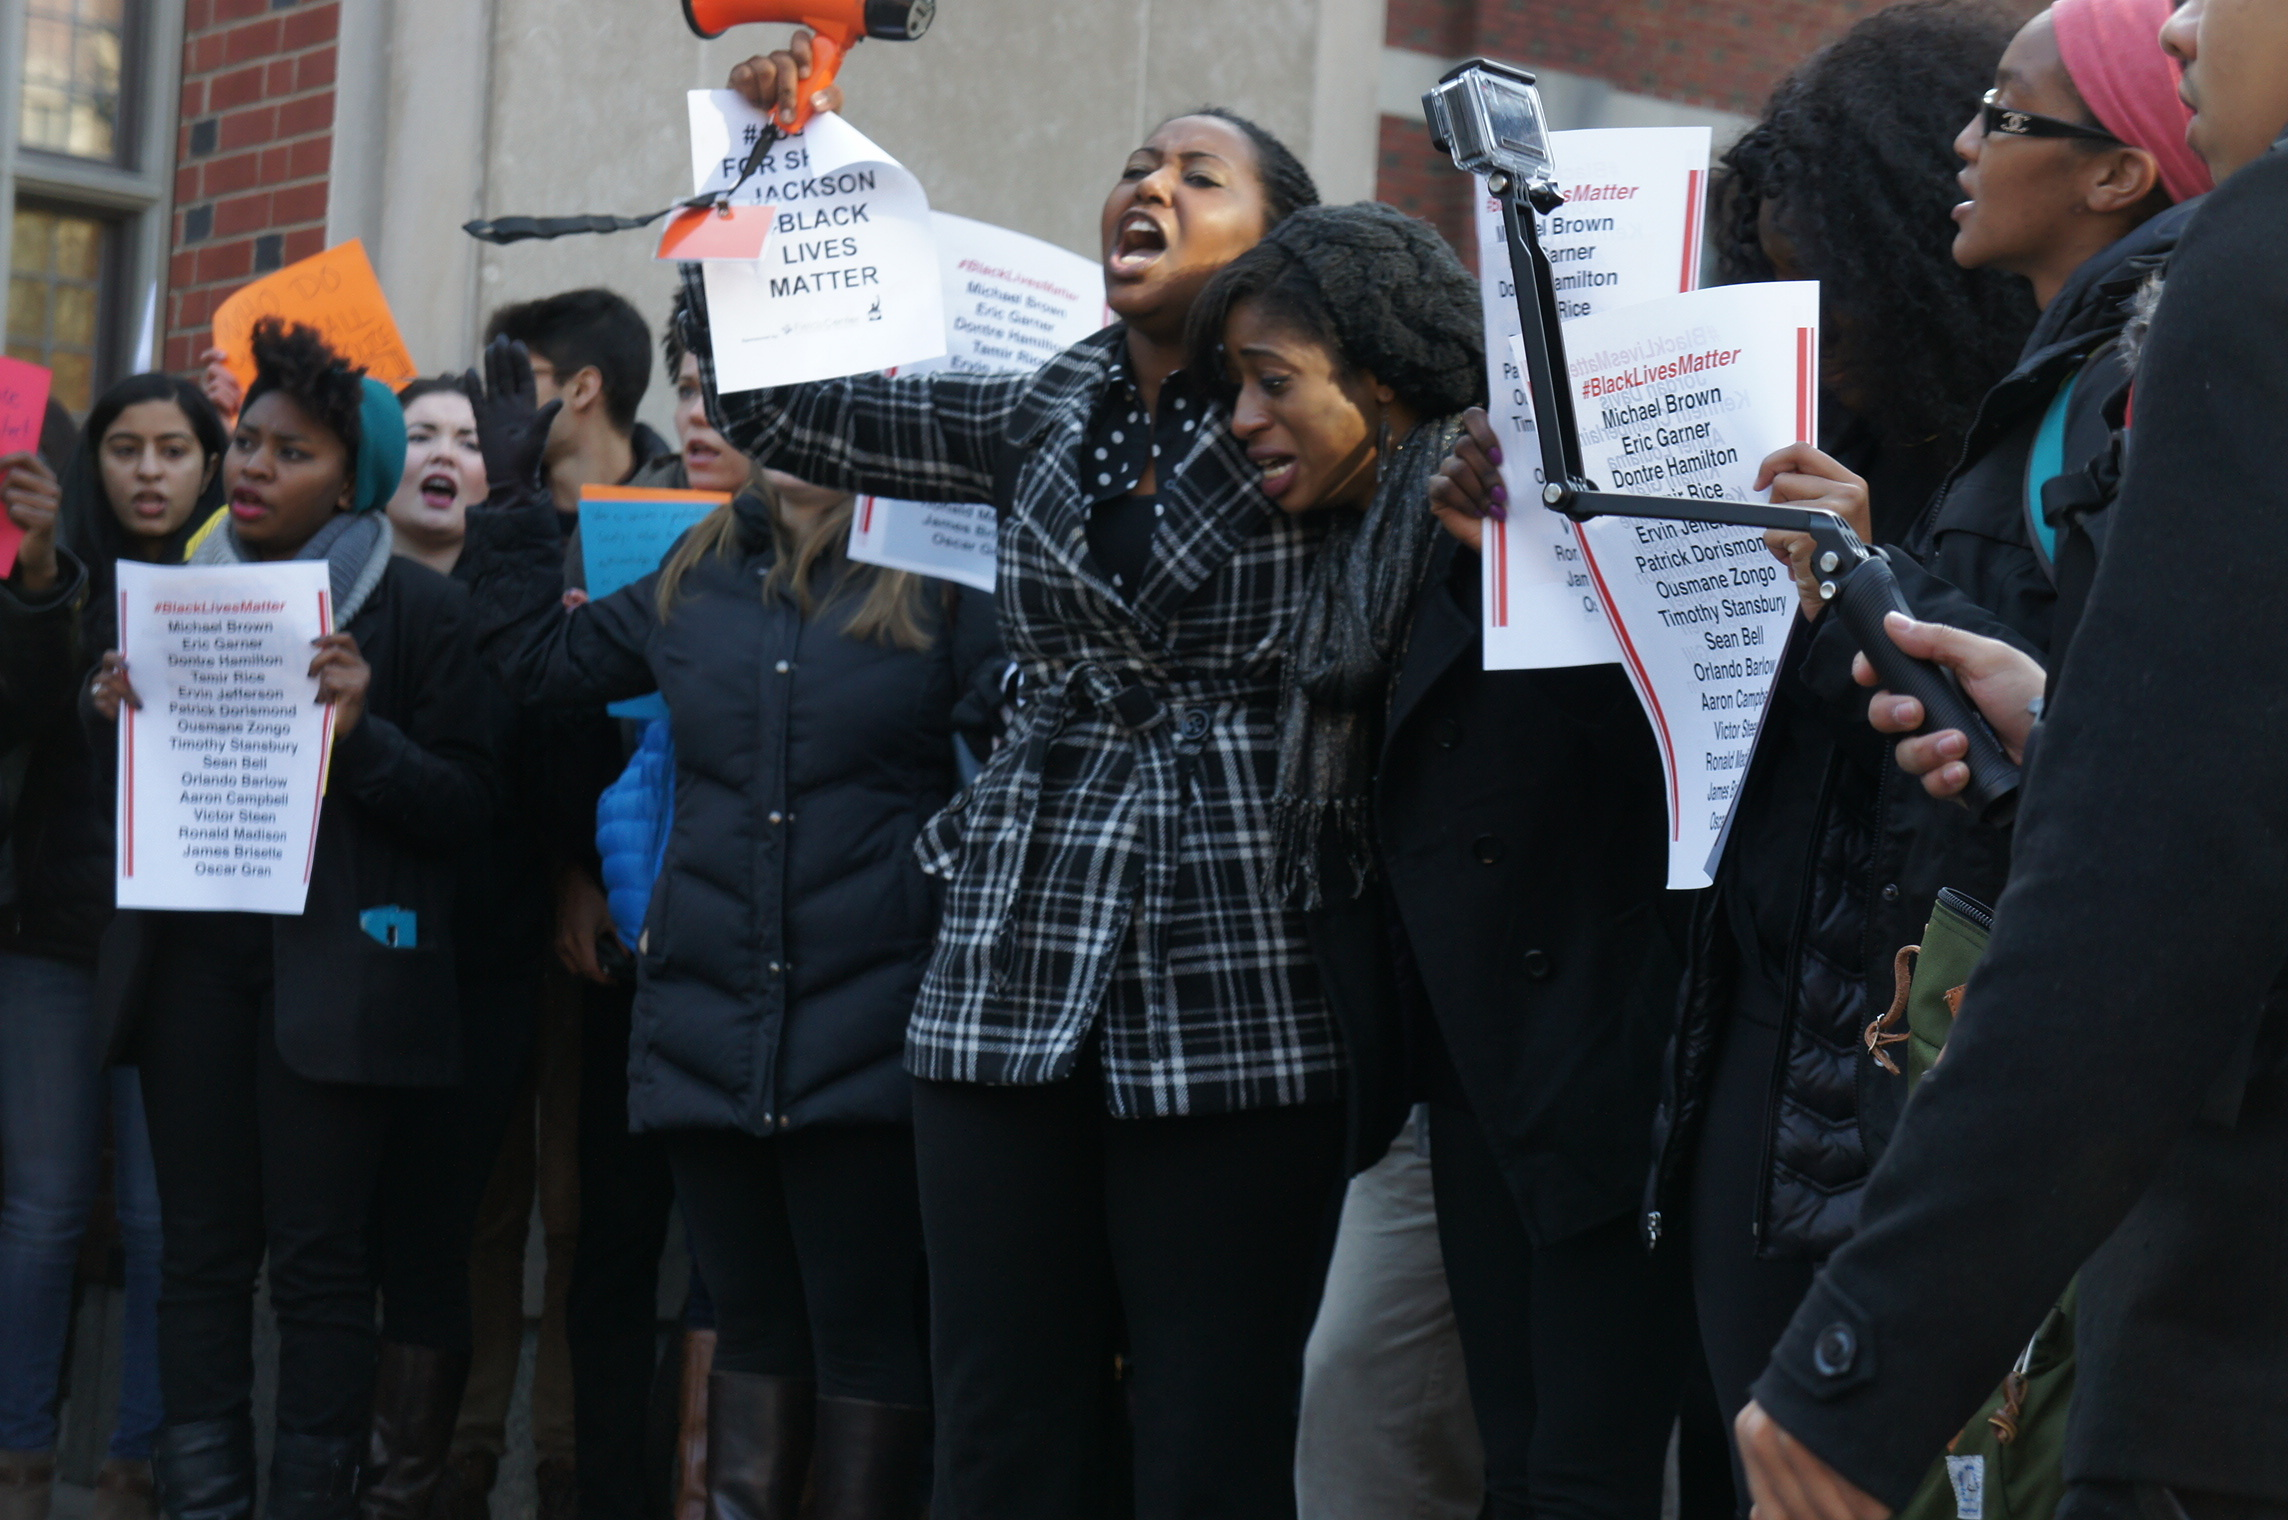 Students displaying outrage and grief in a protest against police brutality outside of Frist Campus Center in 2014.